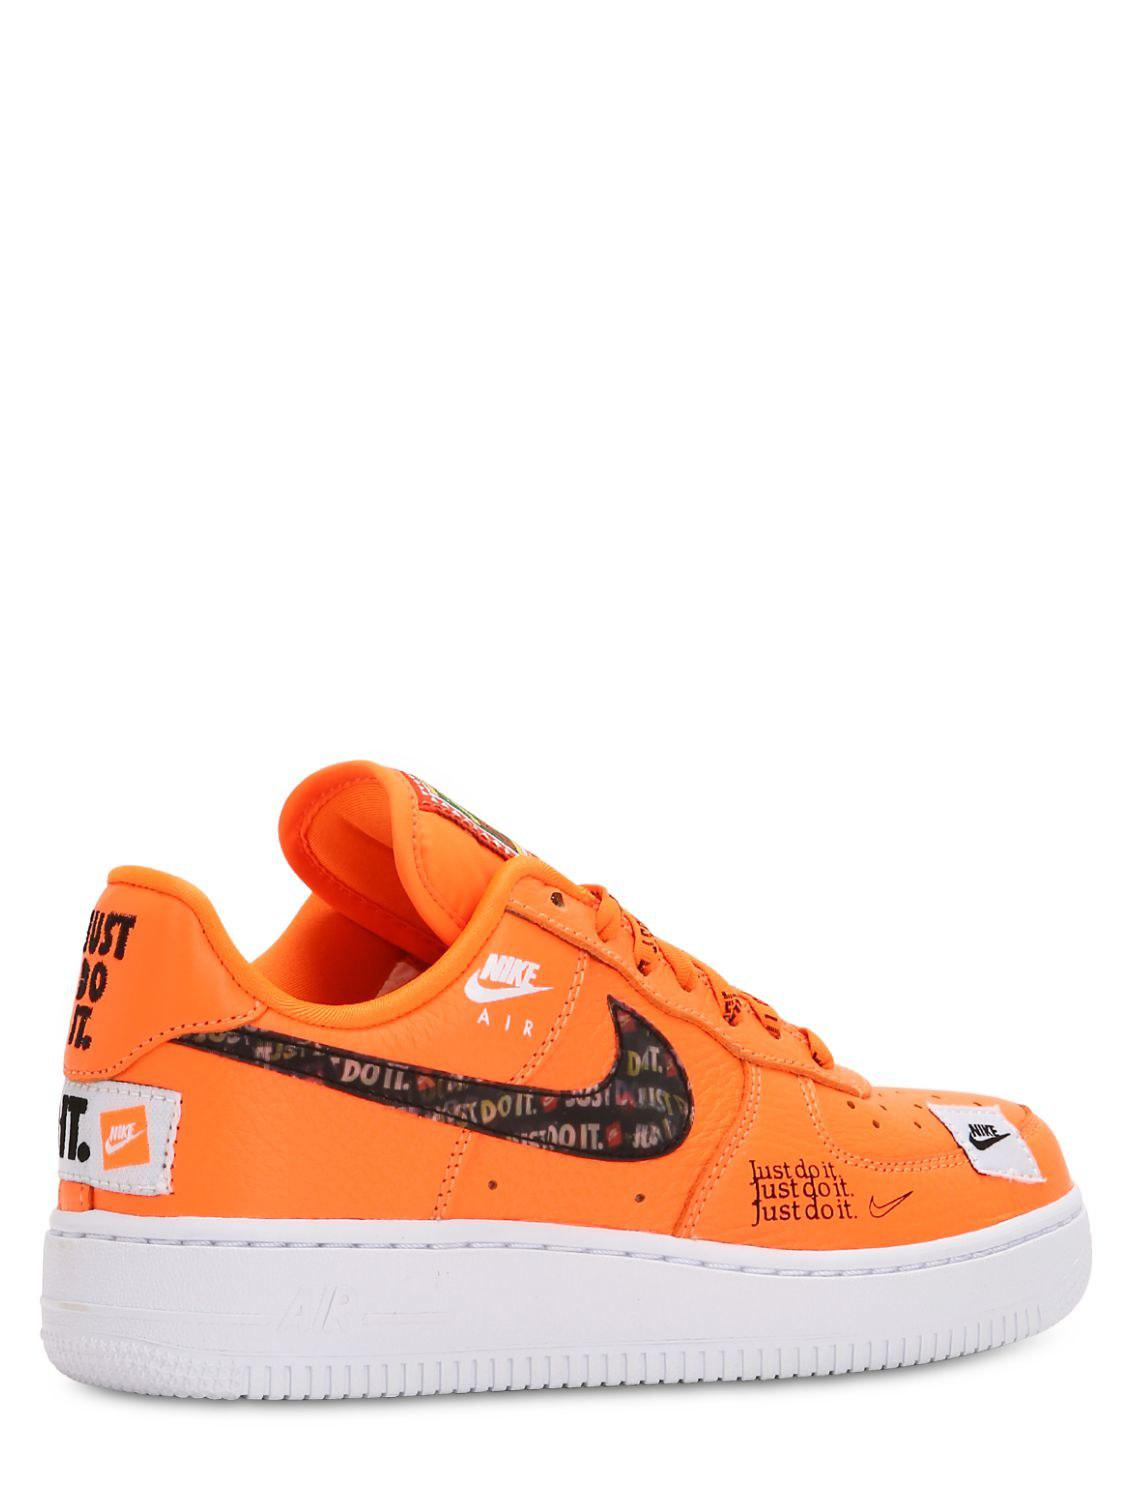 Air Force 1 Just Do It Sneakers